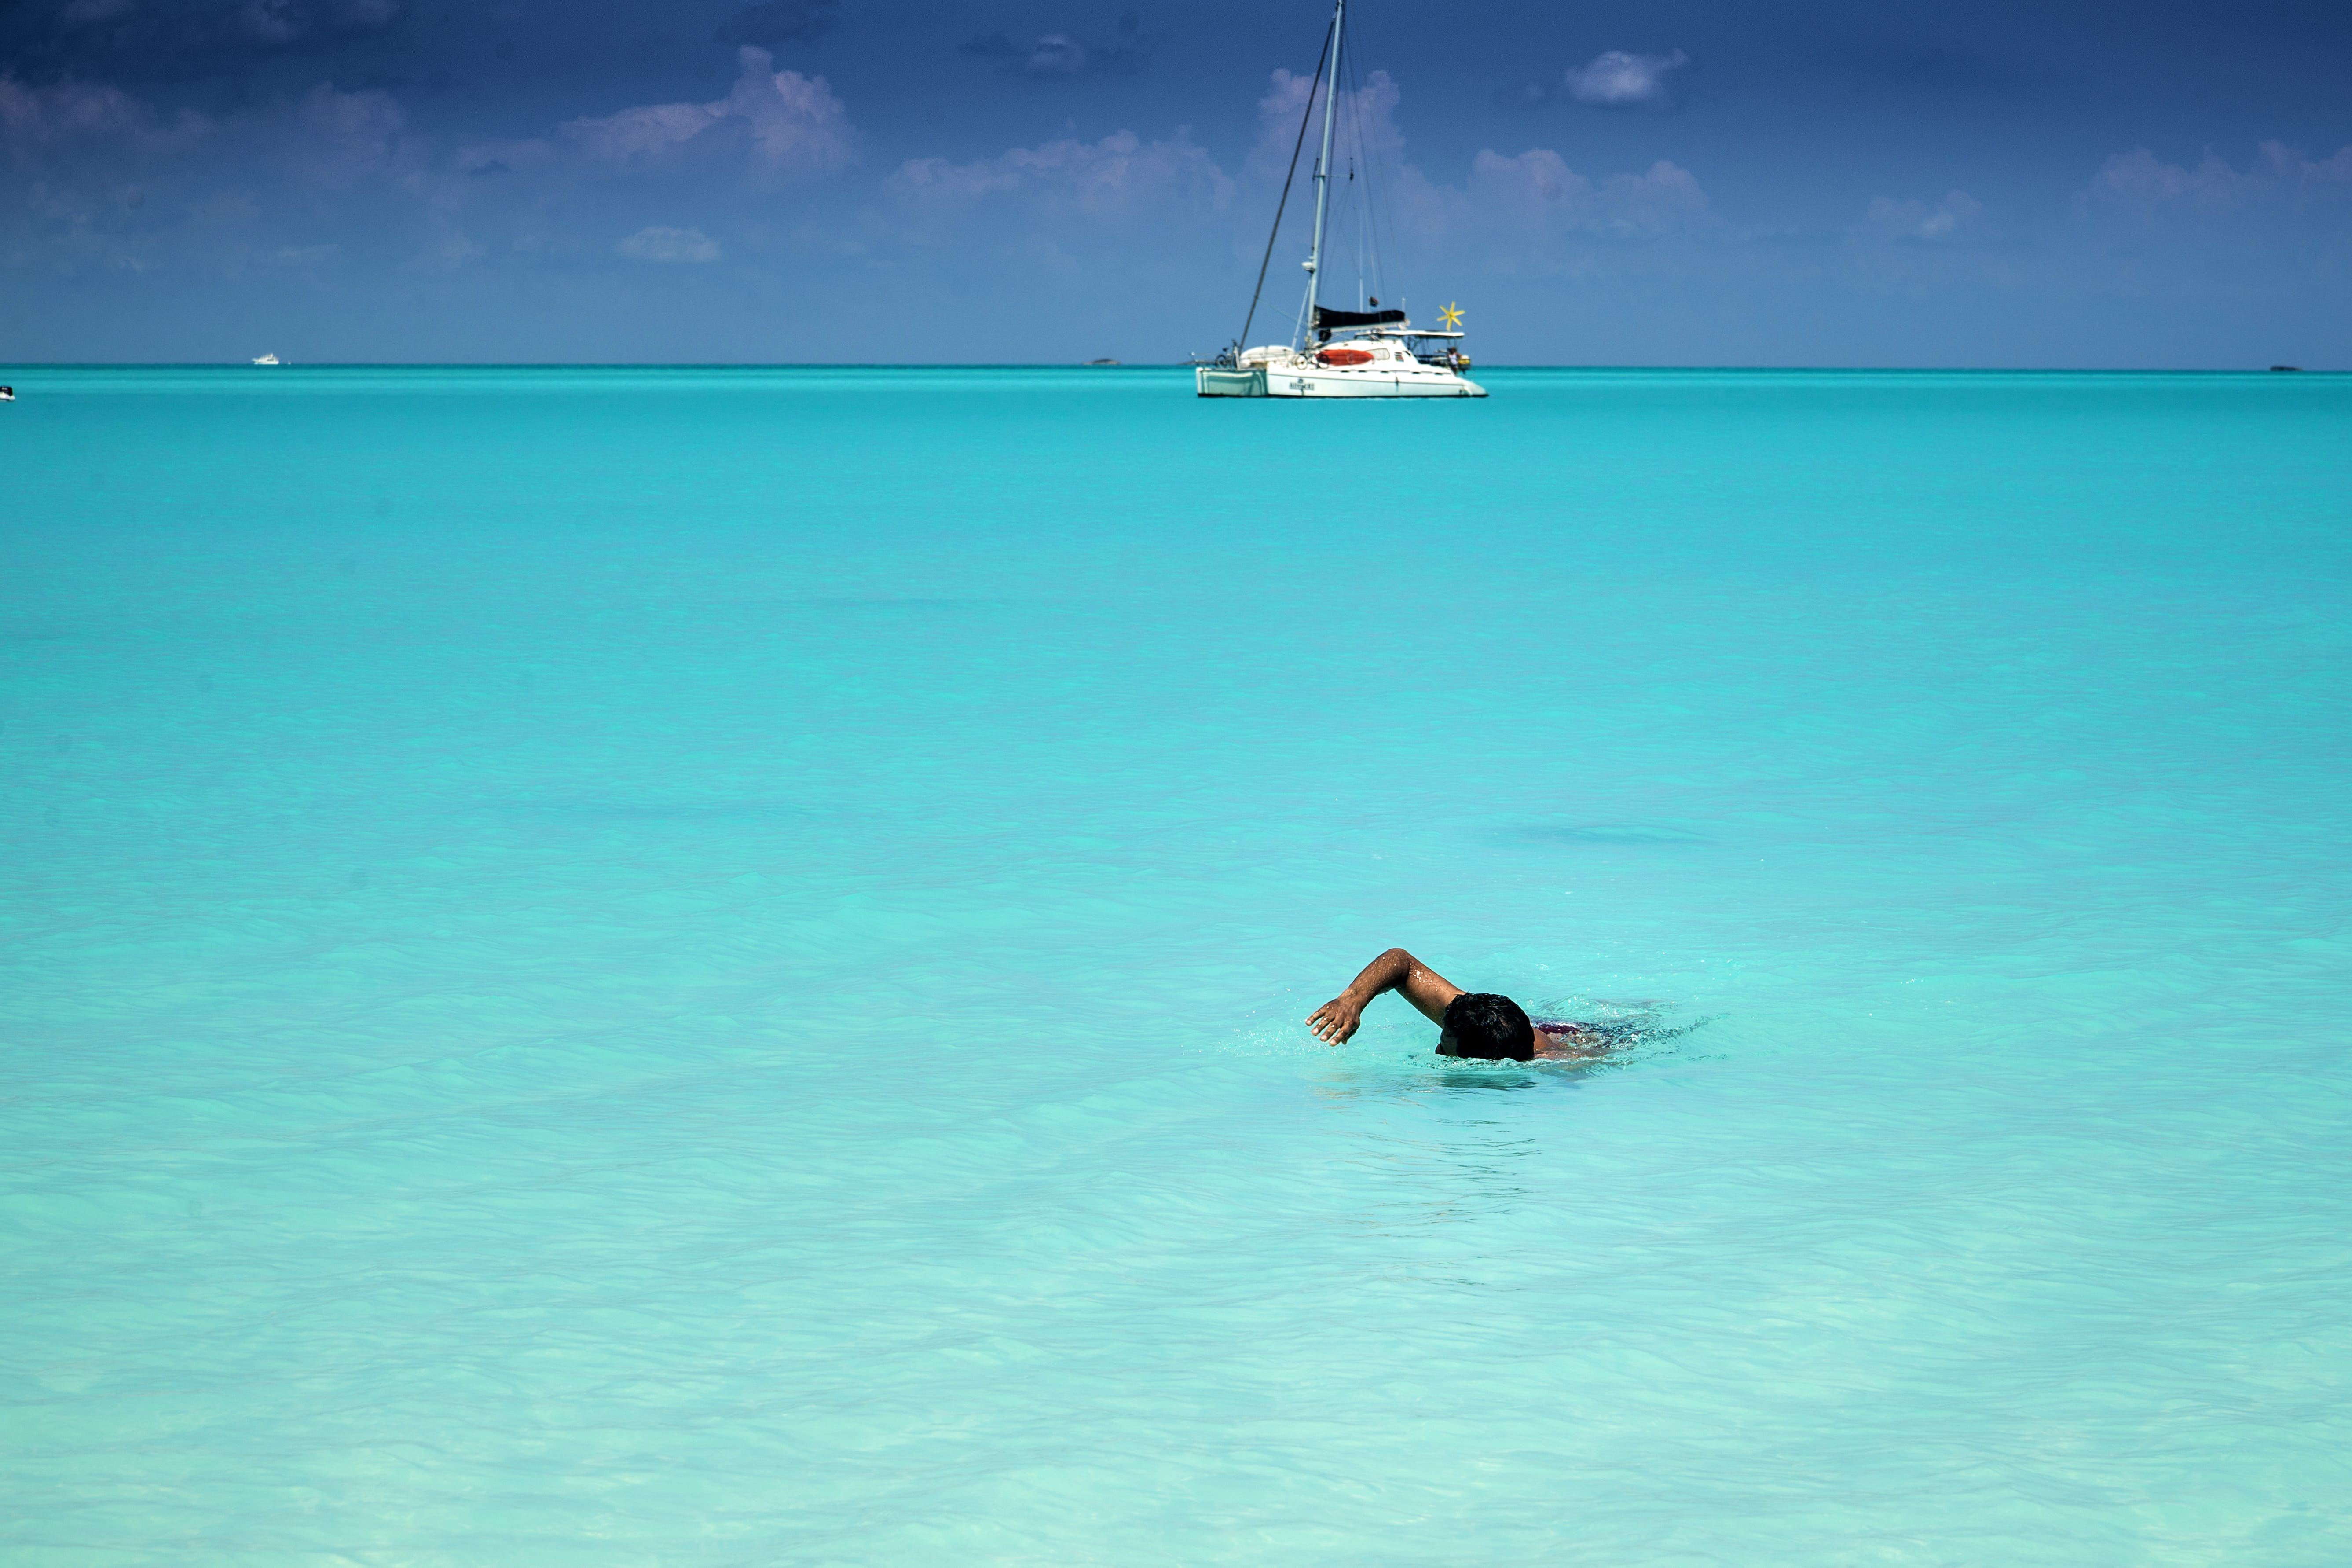 Man swimming to shore in perfectly clear turquoise-colored water. A catamaran sailboat at anchor is in the background